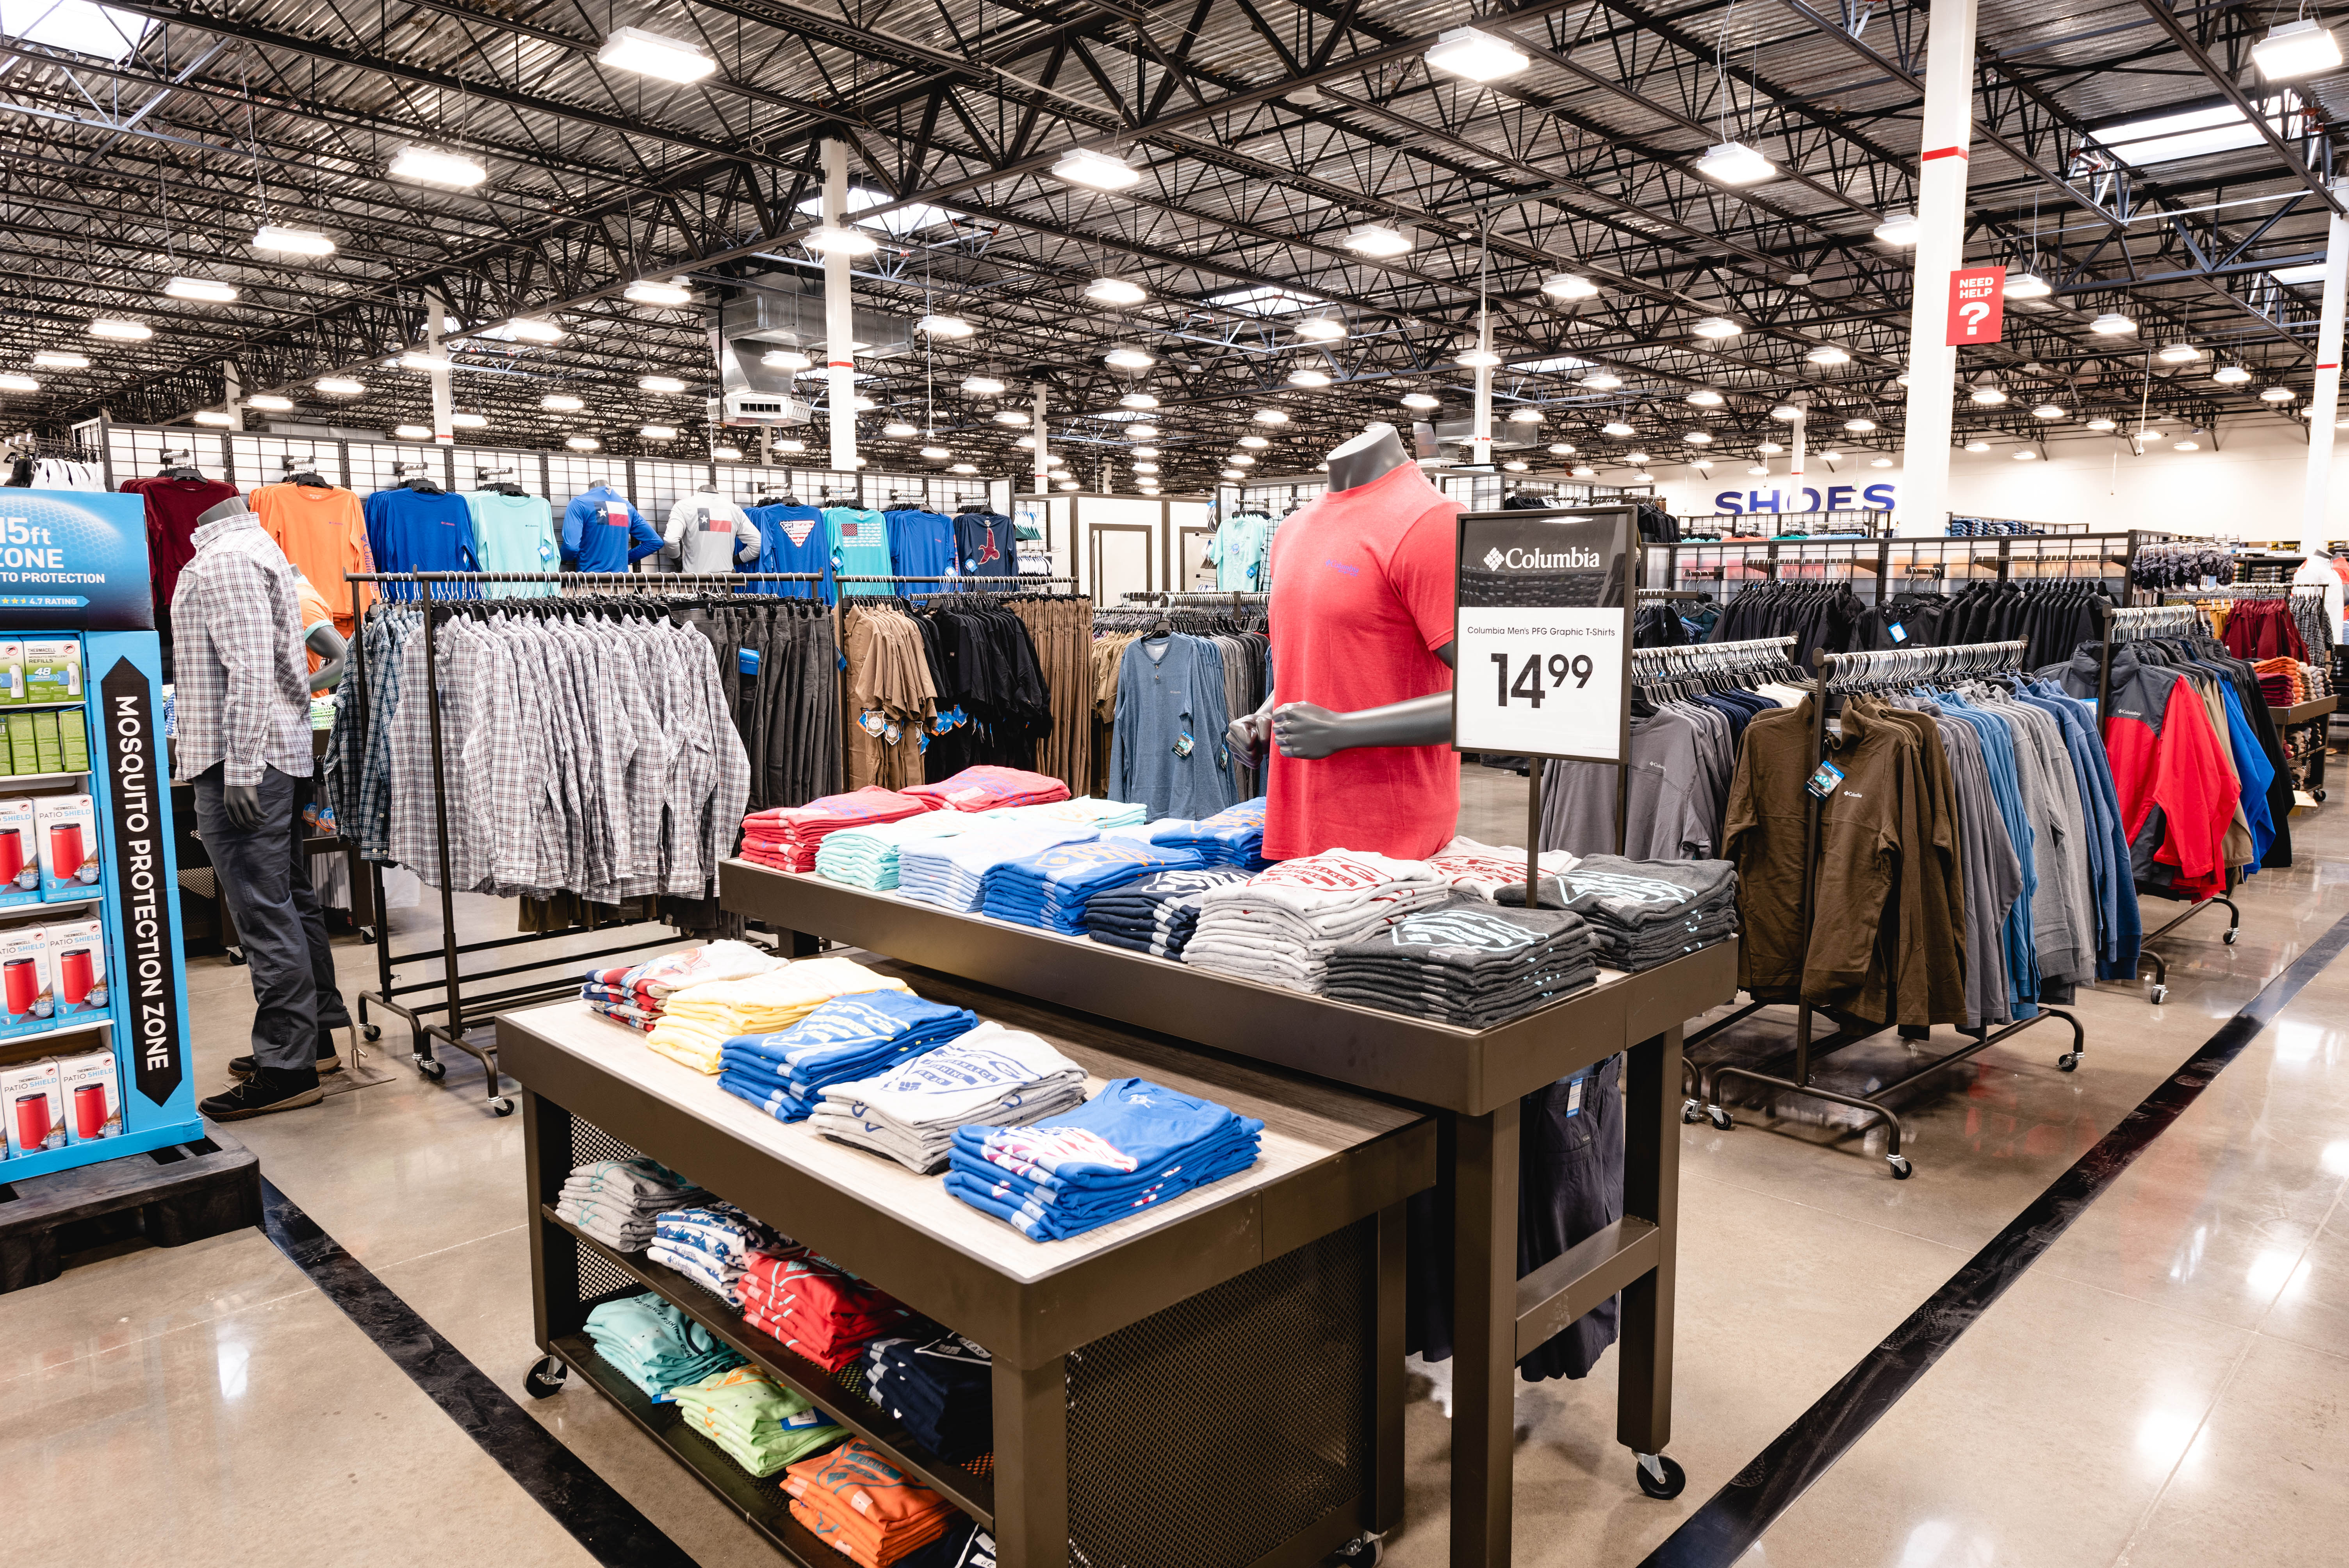 The apparel space at Academy Sports + Outdoors.